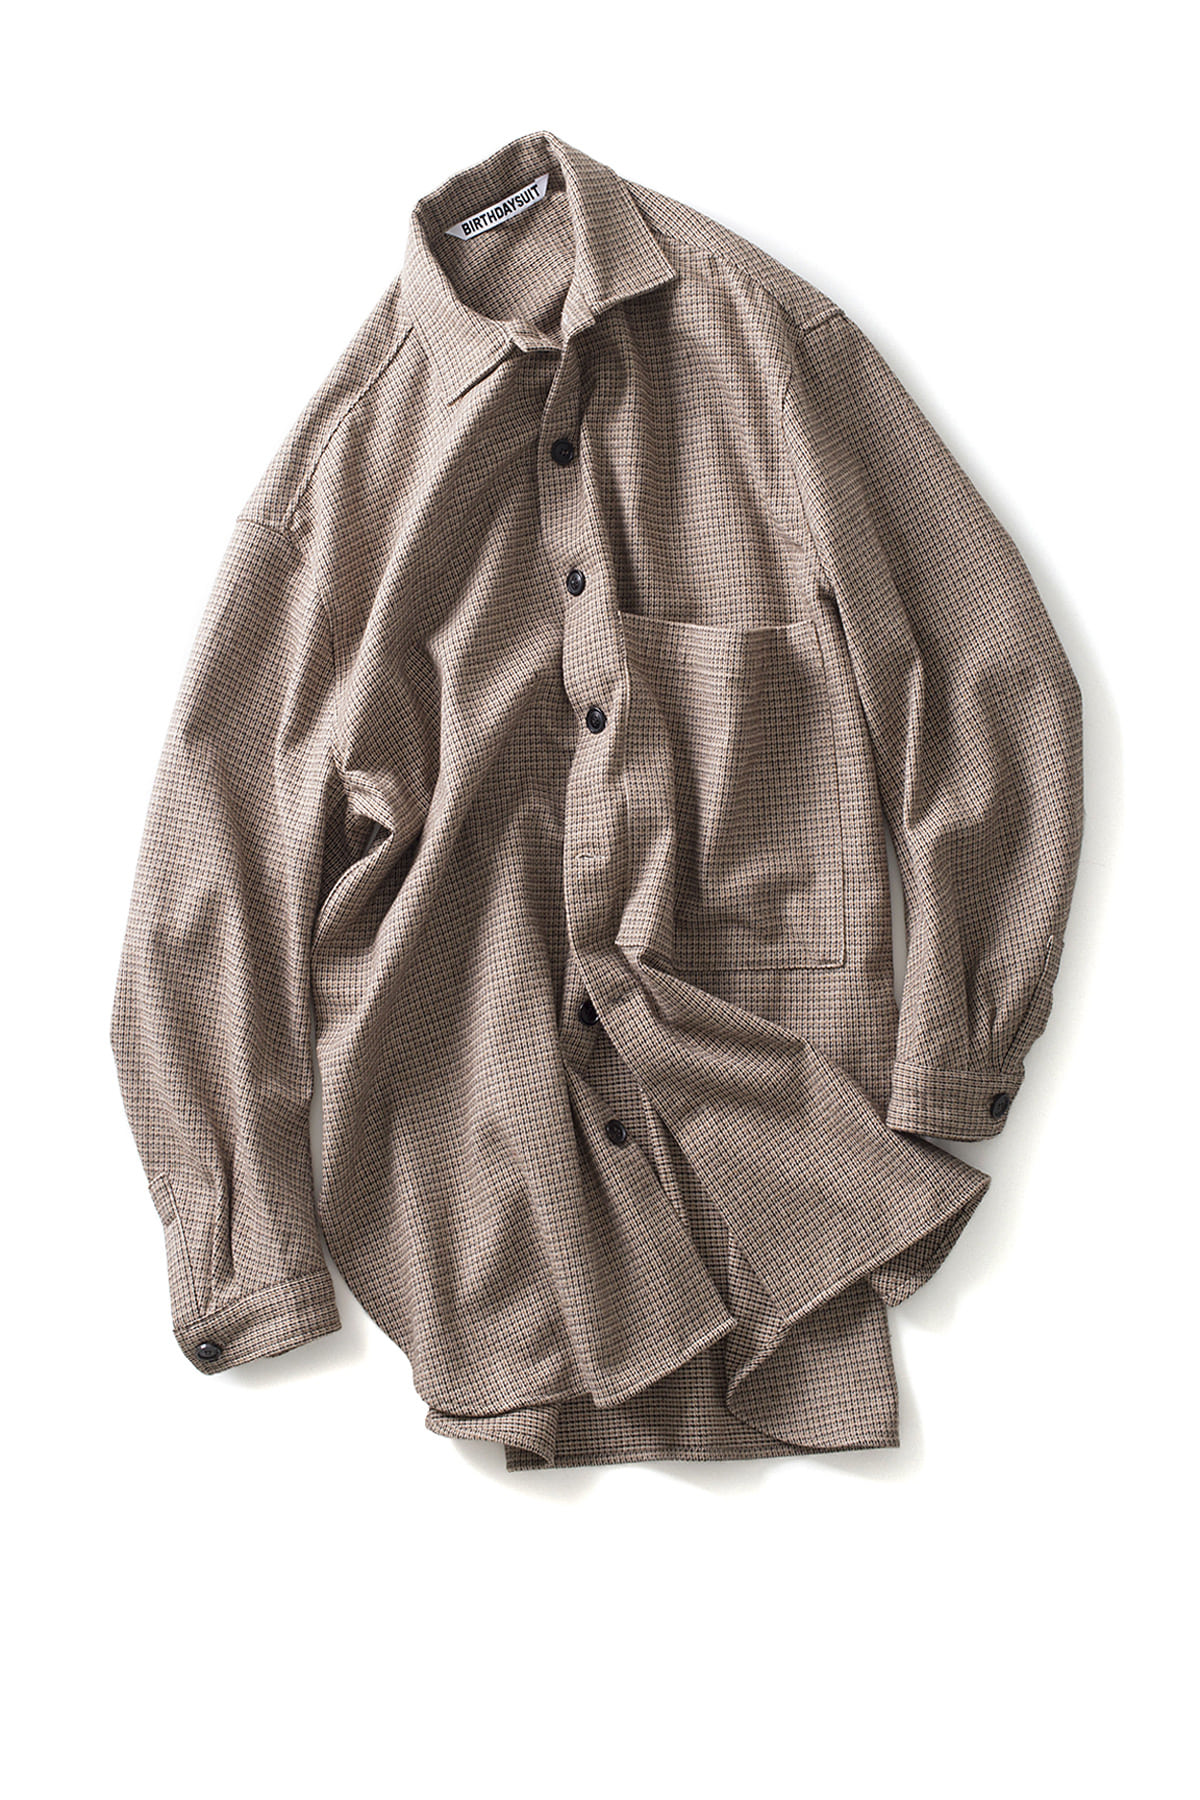 BIRTHDAYSUIT : Oversized Check Shirt Coat (Beige)